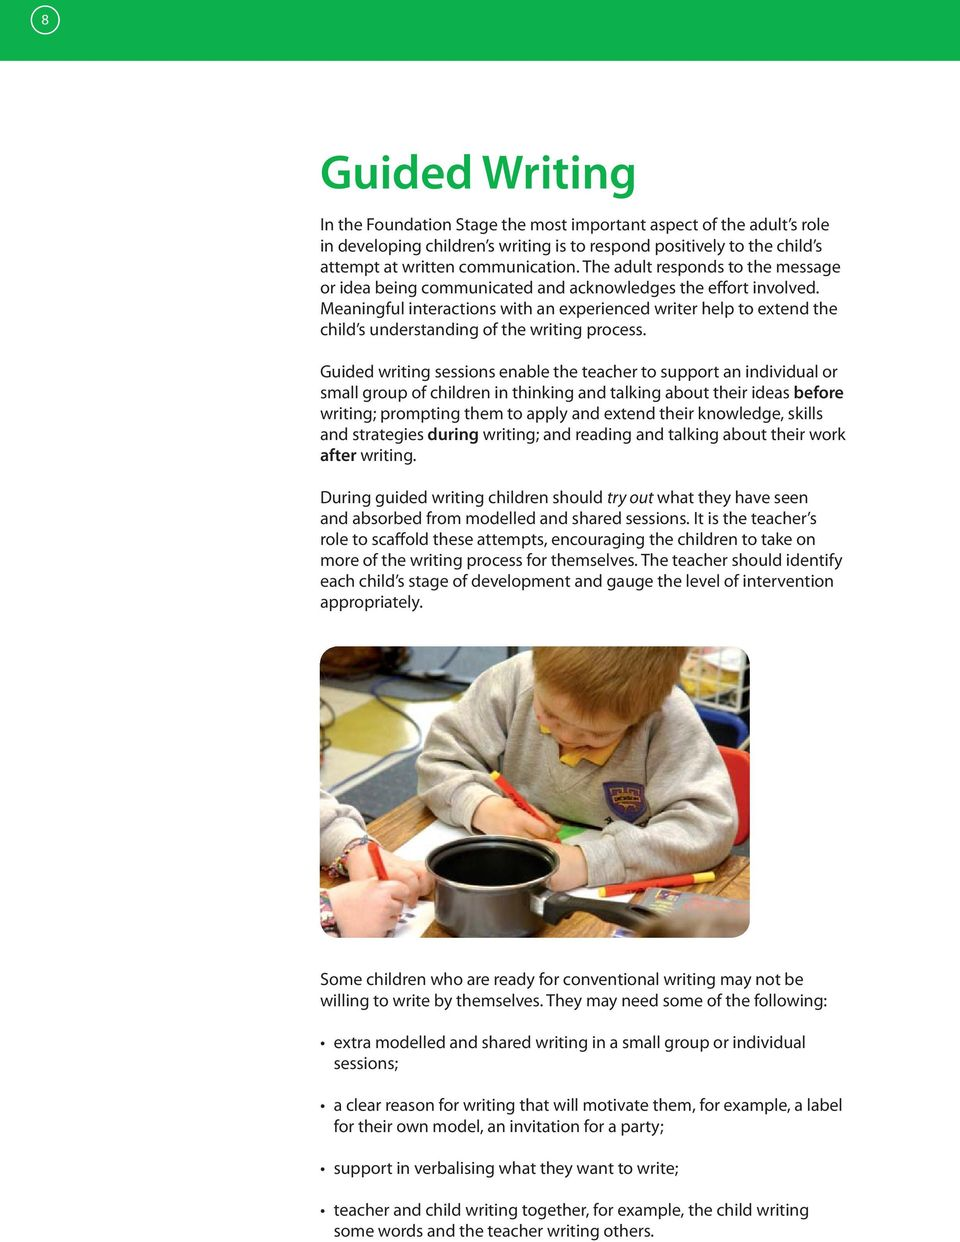 Meaningful interactions with an experienced writer help to extend the child s understanding of the writing process.